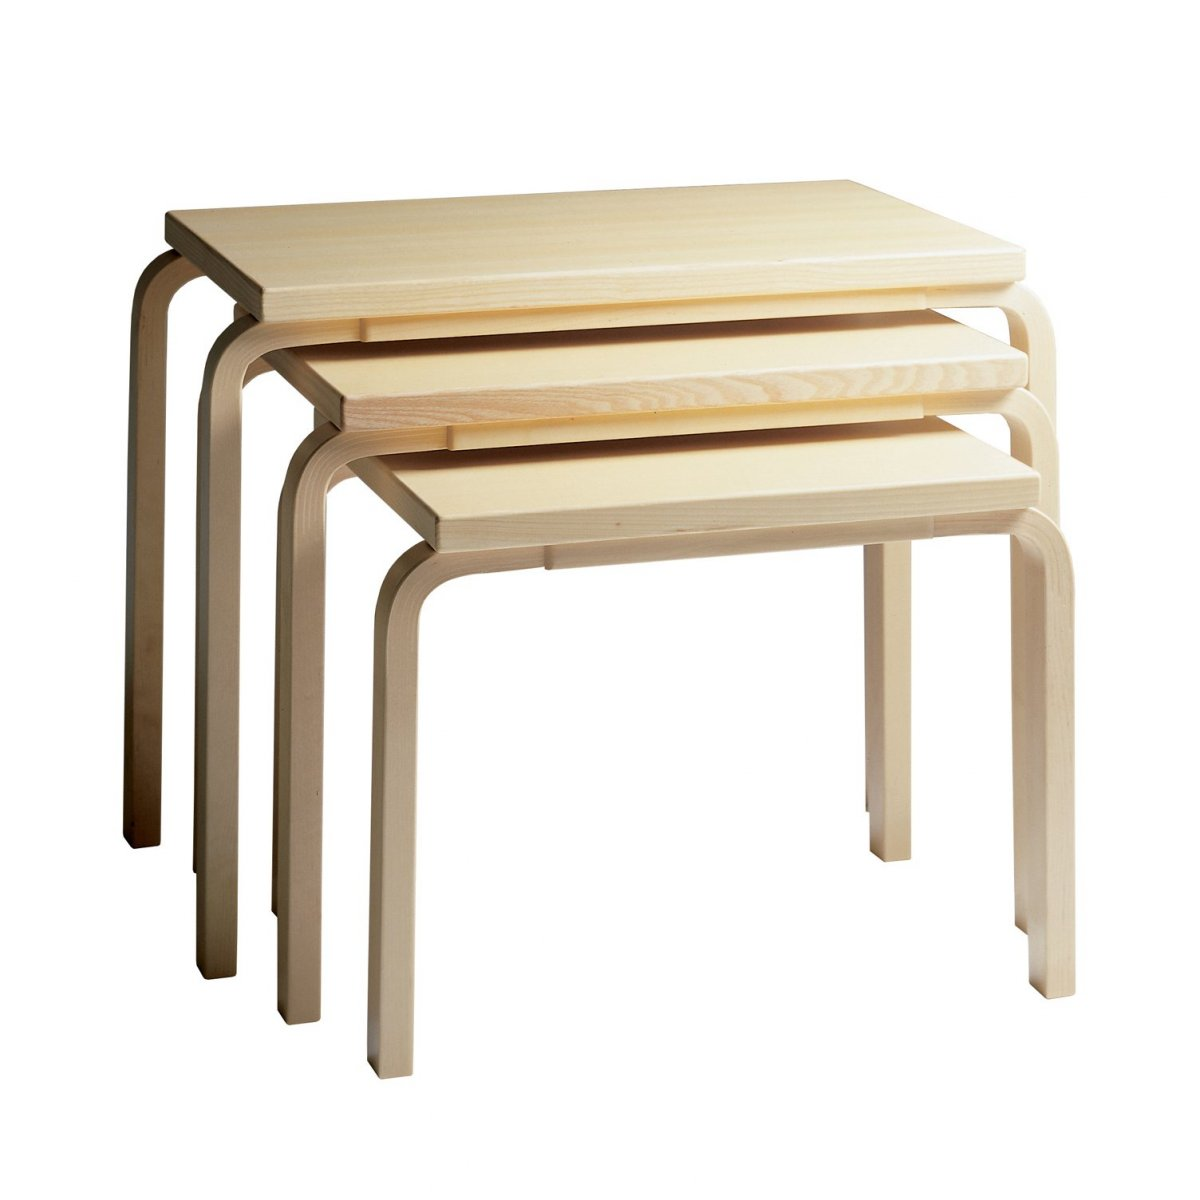 Nesting Table 88.